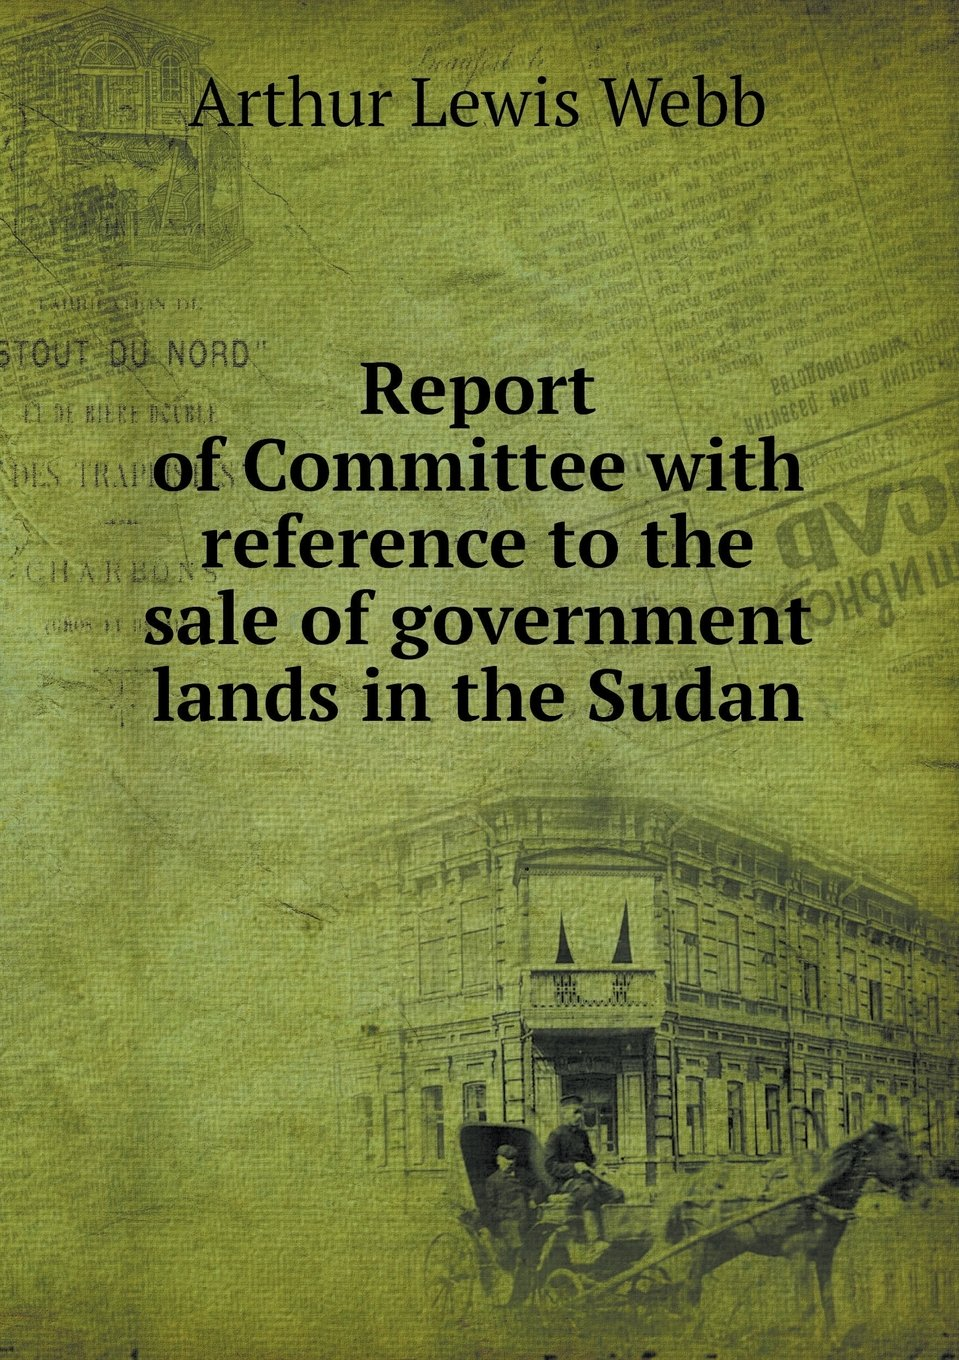 Report of Committee with Reference to the Sale of Government Lands in the Sudan